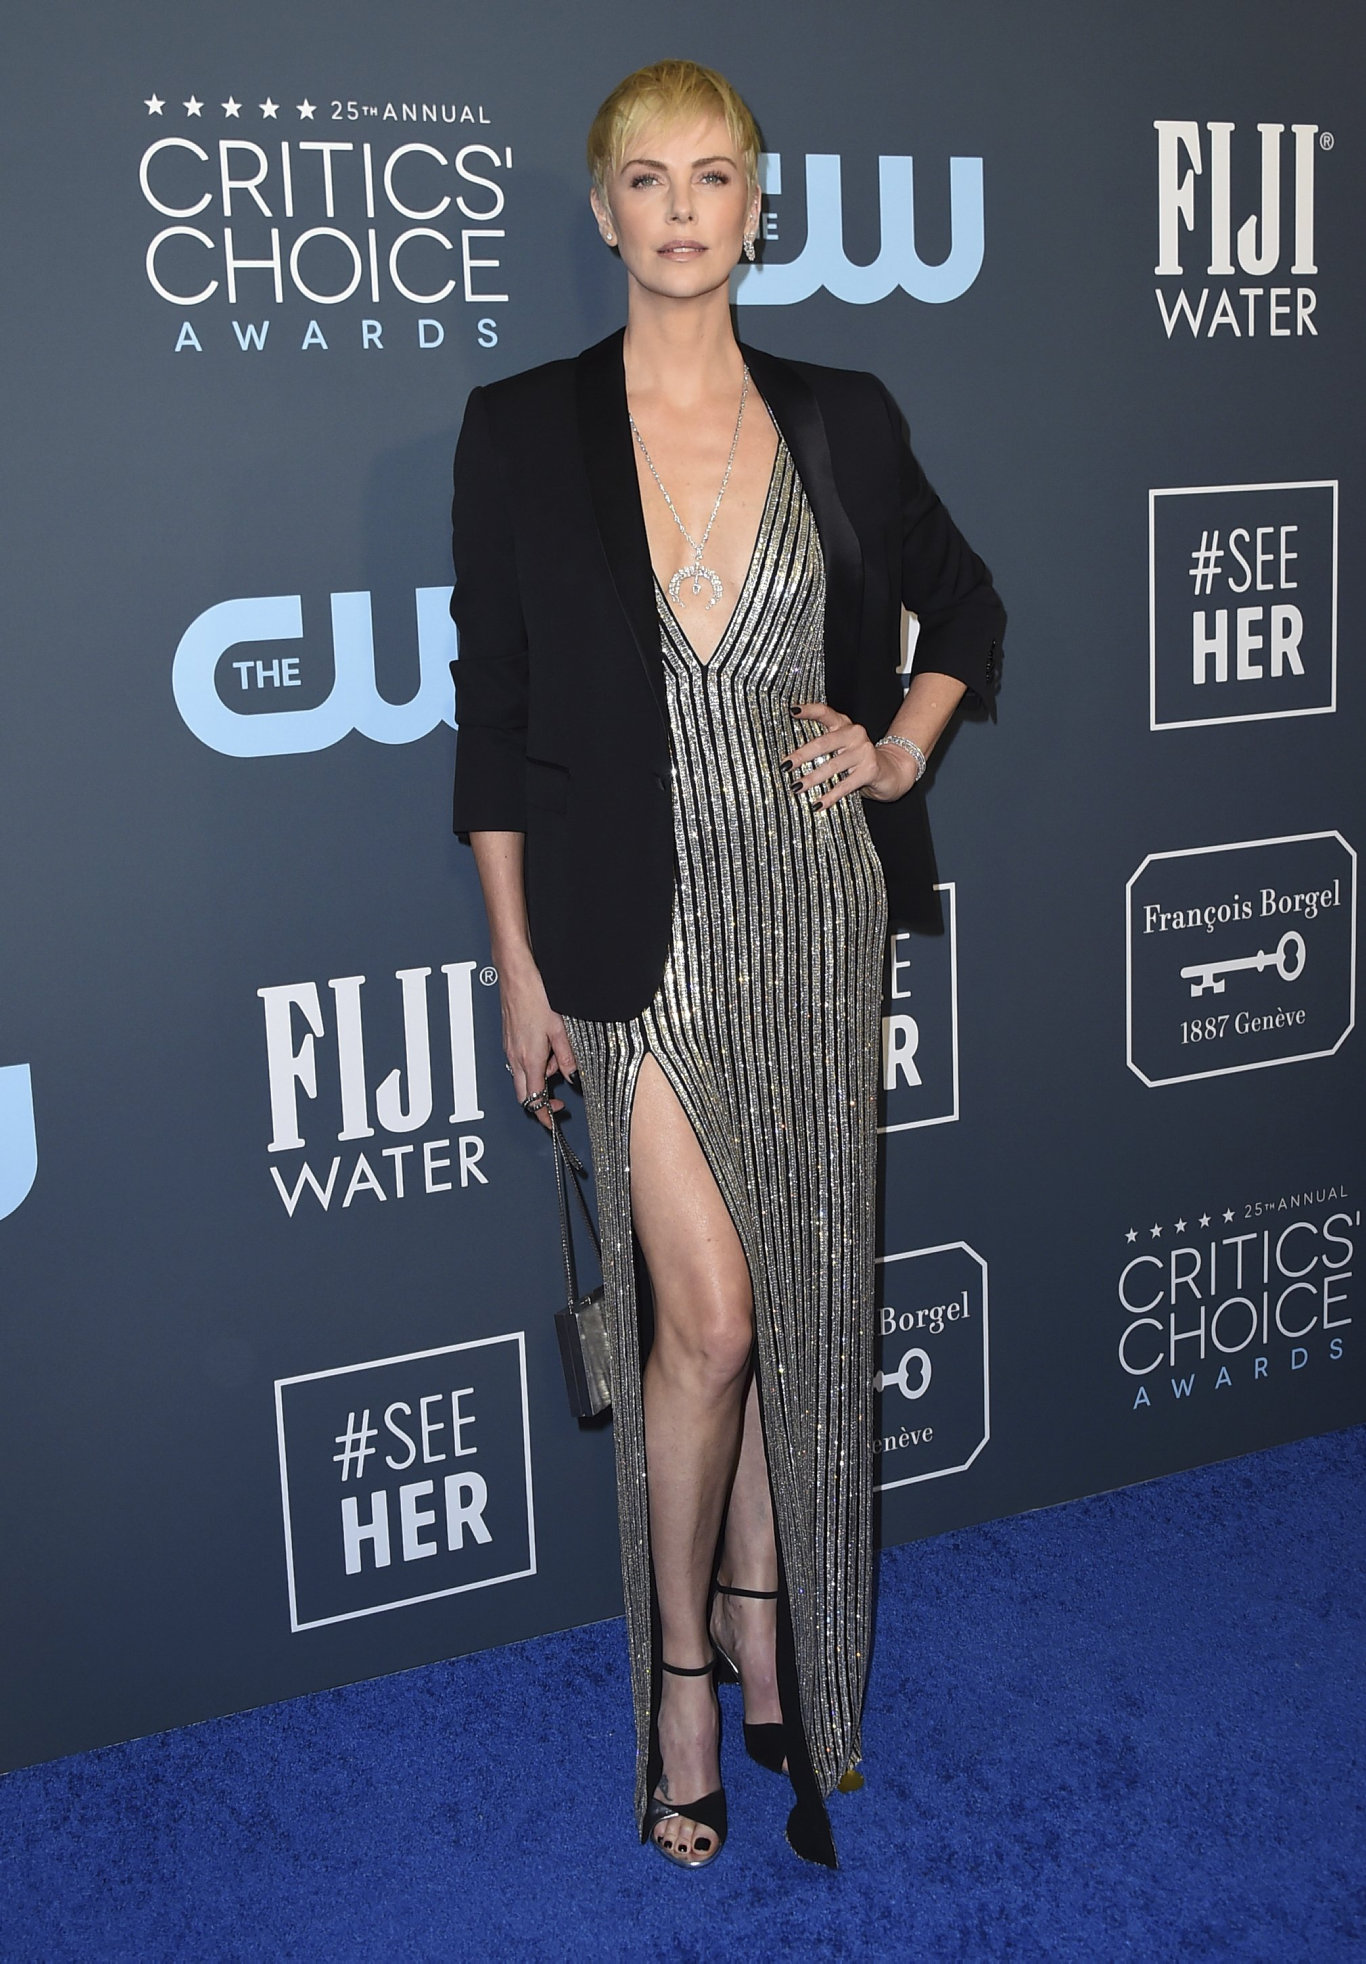 Charlize Theron arrives at the 25th annual Critics' Choice Awards at the Barker Hangar in Santa Monica, Calif.